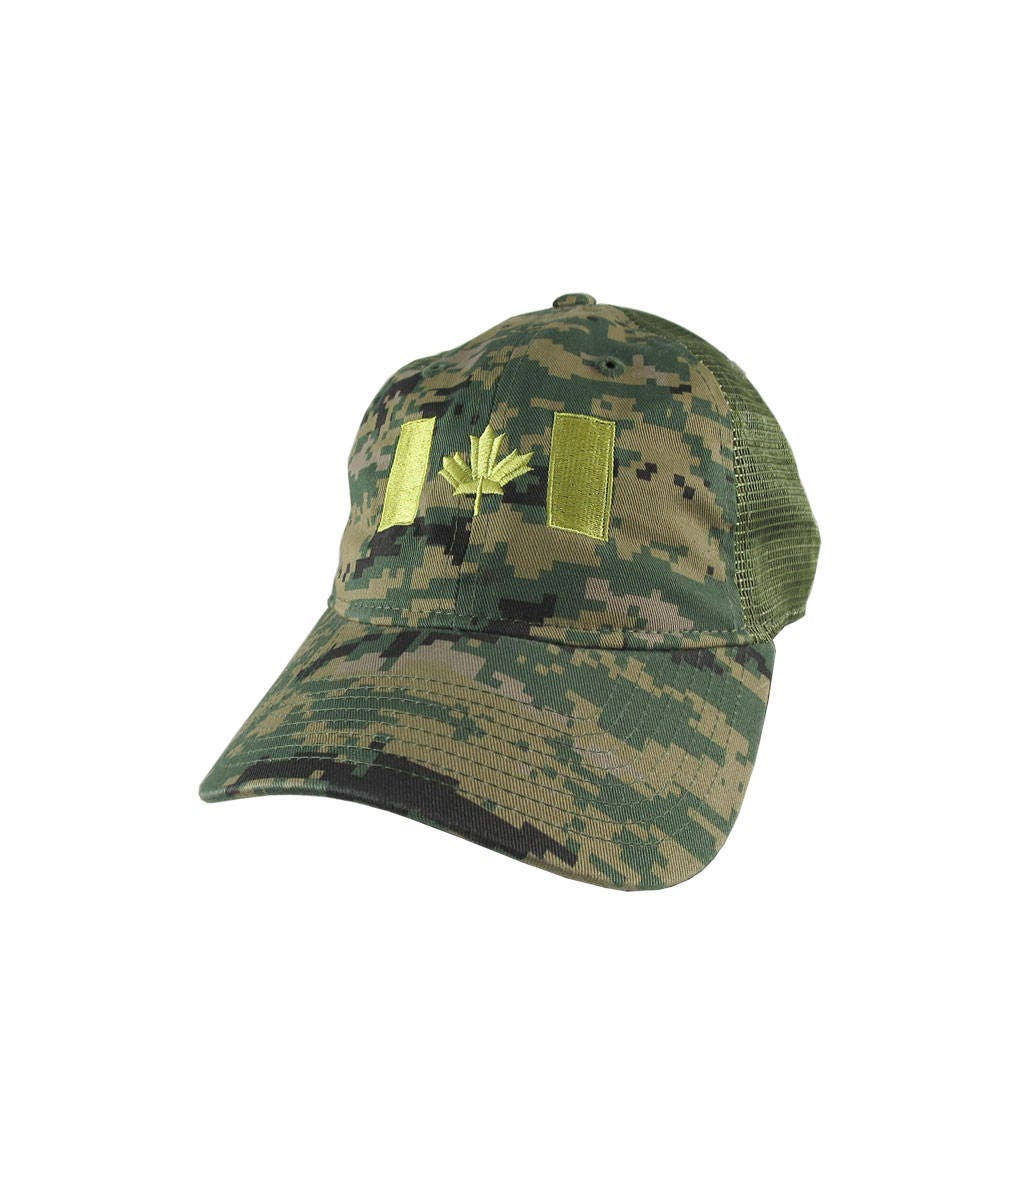 Canadian Flag Canada Embroidery on a Woodland Digital Camouflage  Unstructured Adjustable Classic Trucker Style Cap in Khaki green Back Mesh e8efa83cce66